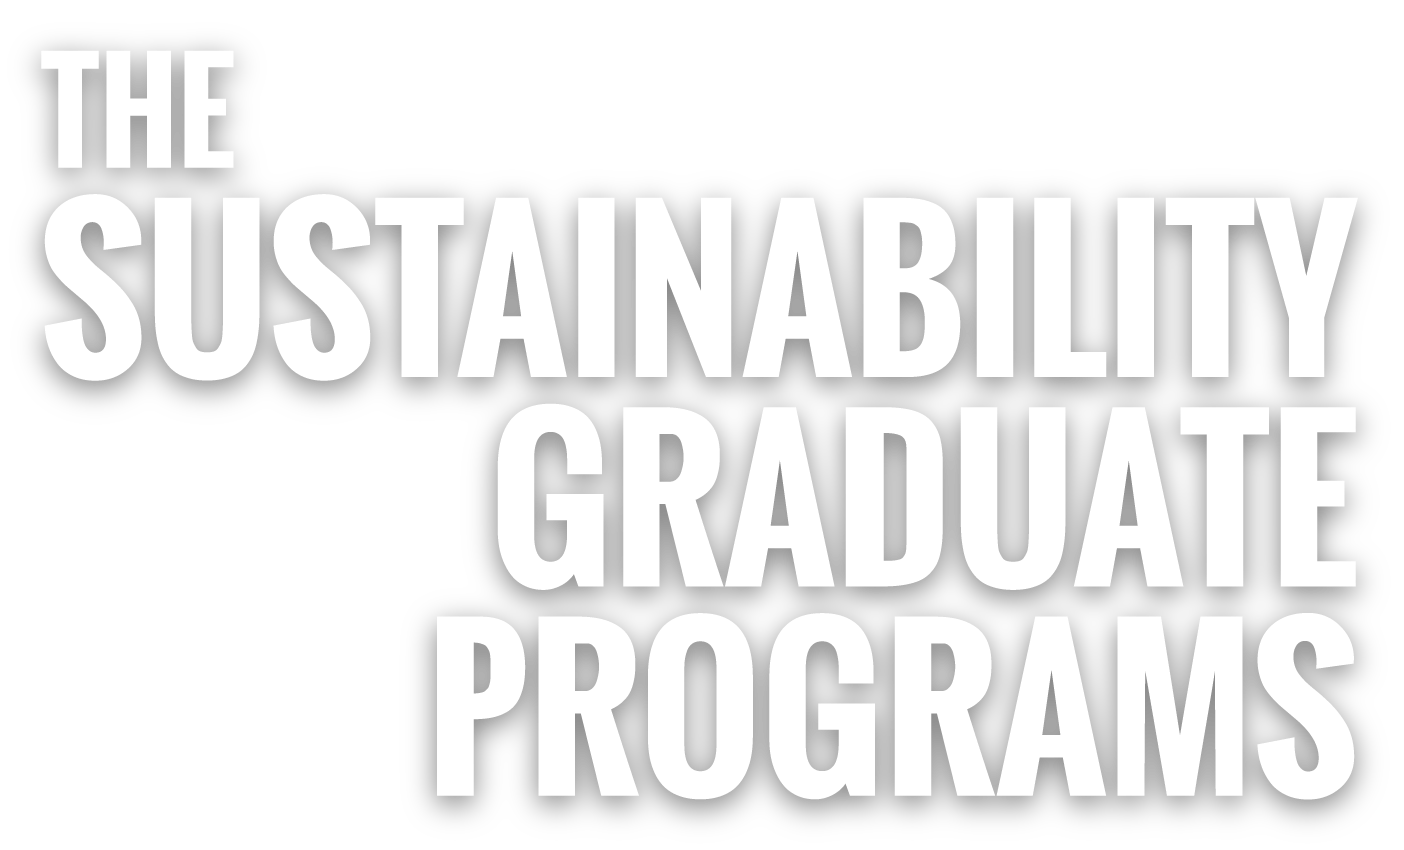 The Sustainability Graduate Programs